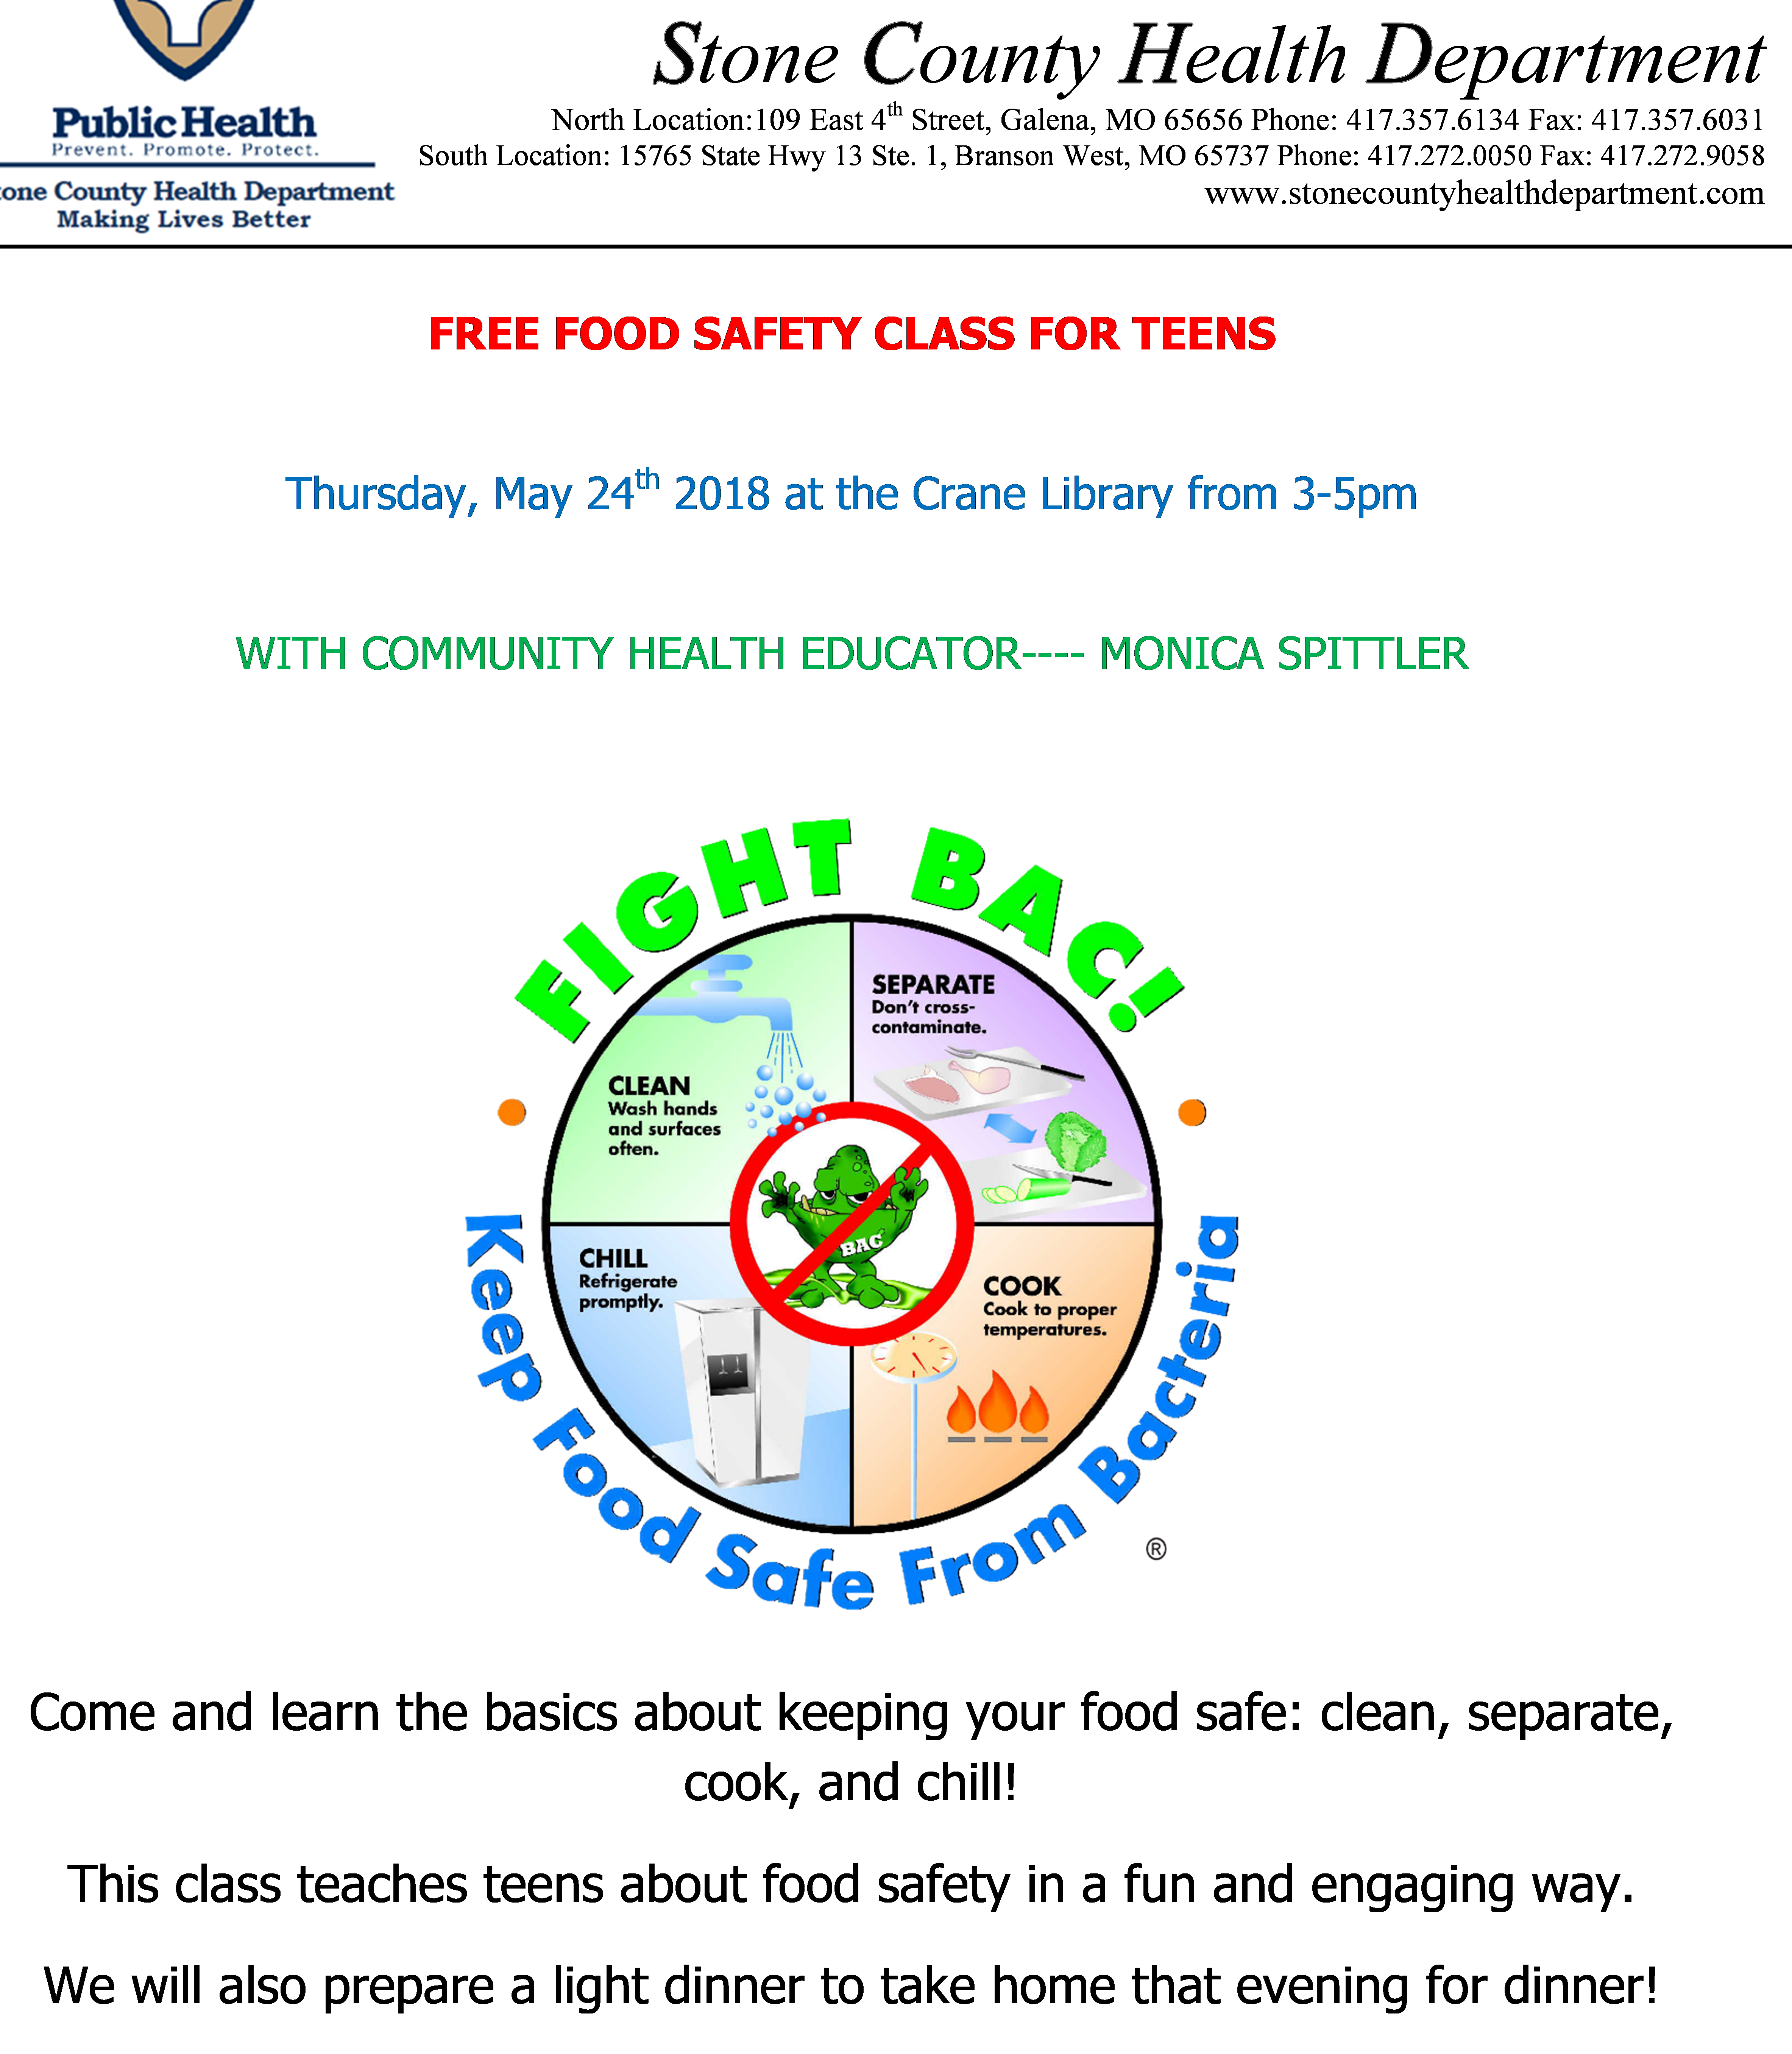 Free Food Safety Class For Teens - Stone County Health